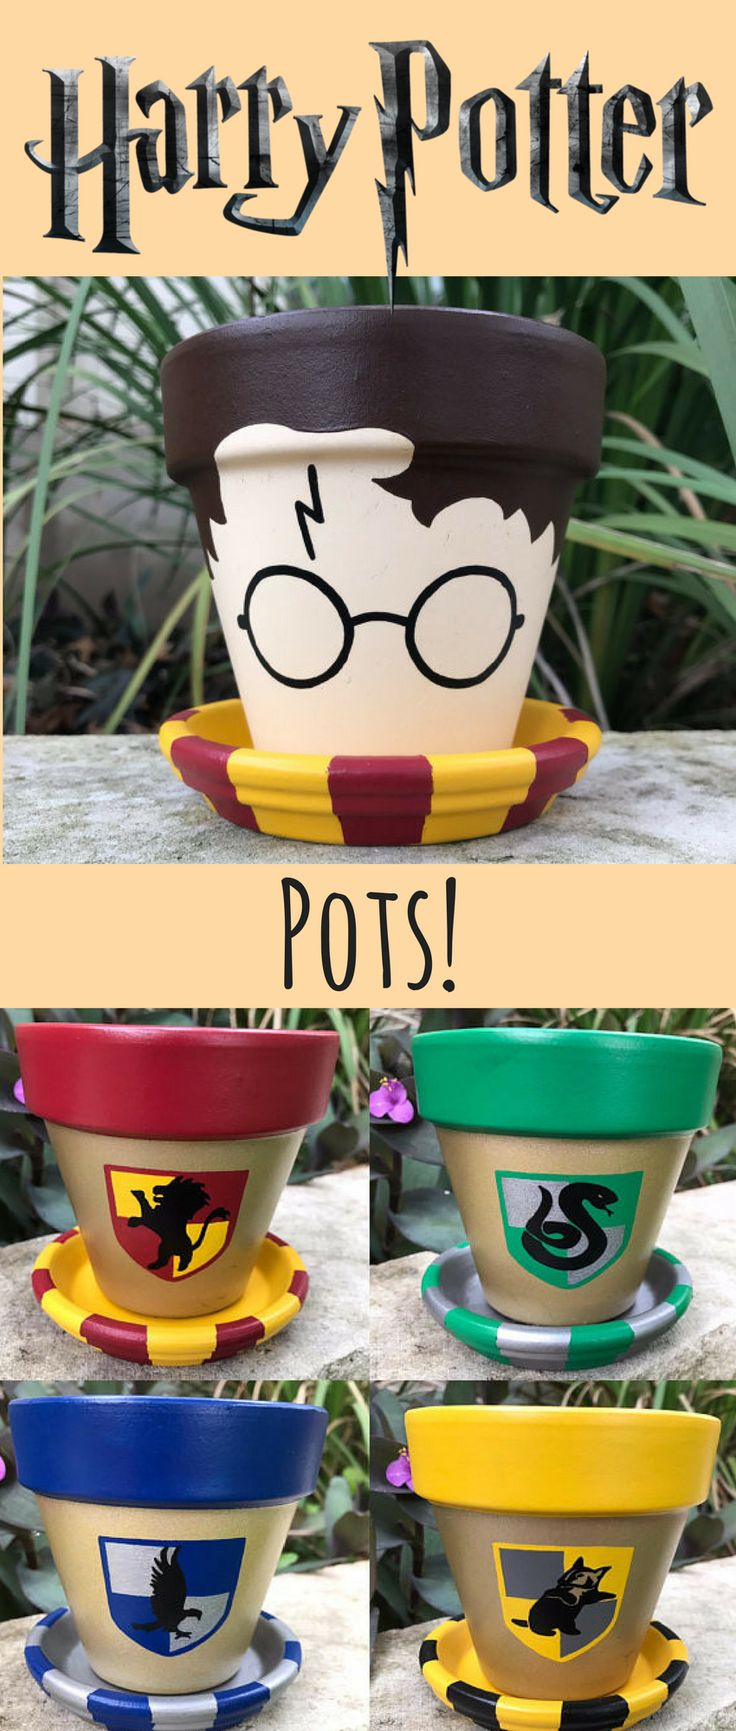 How cute! I would love a harry Potter Pot for my window still! Maybe I could plant a magical plant in it? #ad #affiliate #etsy #etsyfinds #harrypotter #butterbeer #harrypotterfan #harrypottergift #mandrake #plants #planter #pottedplant #pots